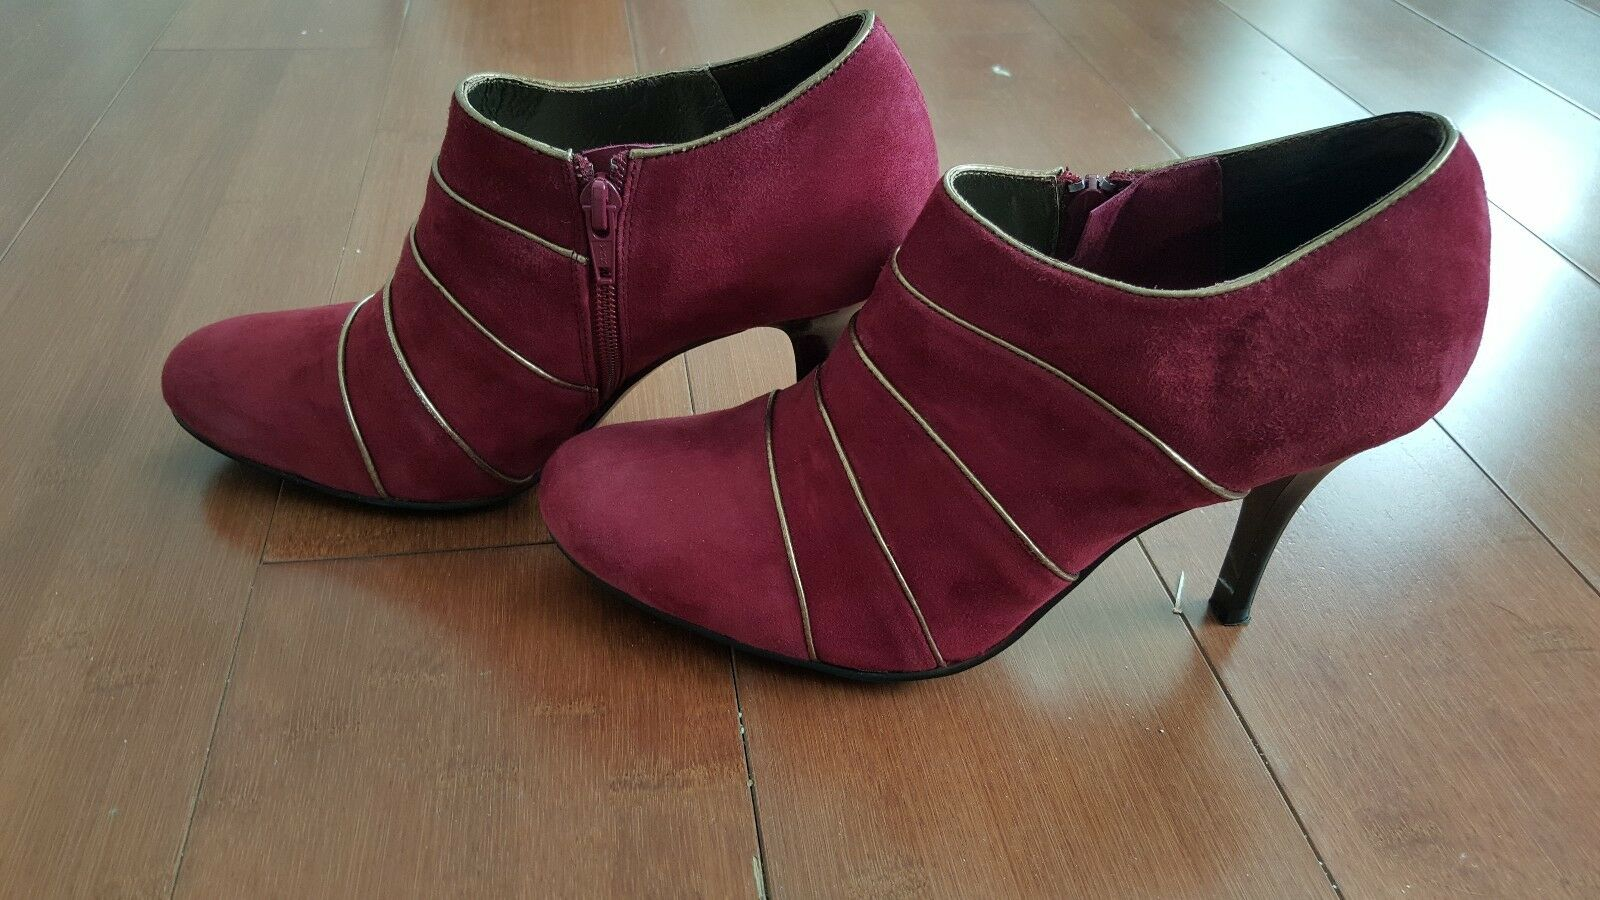 Charles David Damenschuhe ROT Suede 8.5 Ankle Stiefel Booties Größe 8.5 Suede 7d71e3